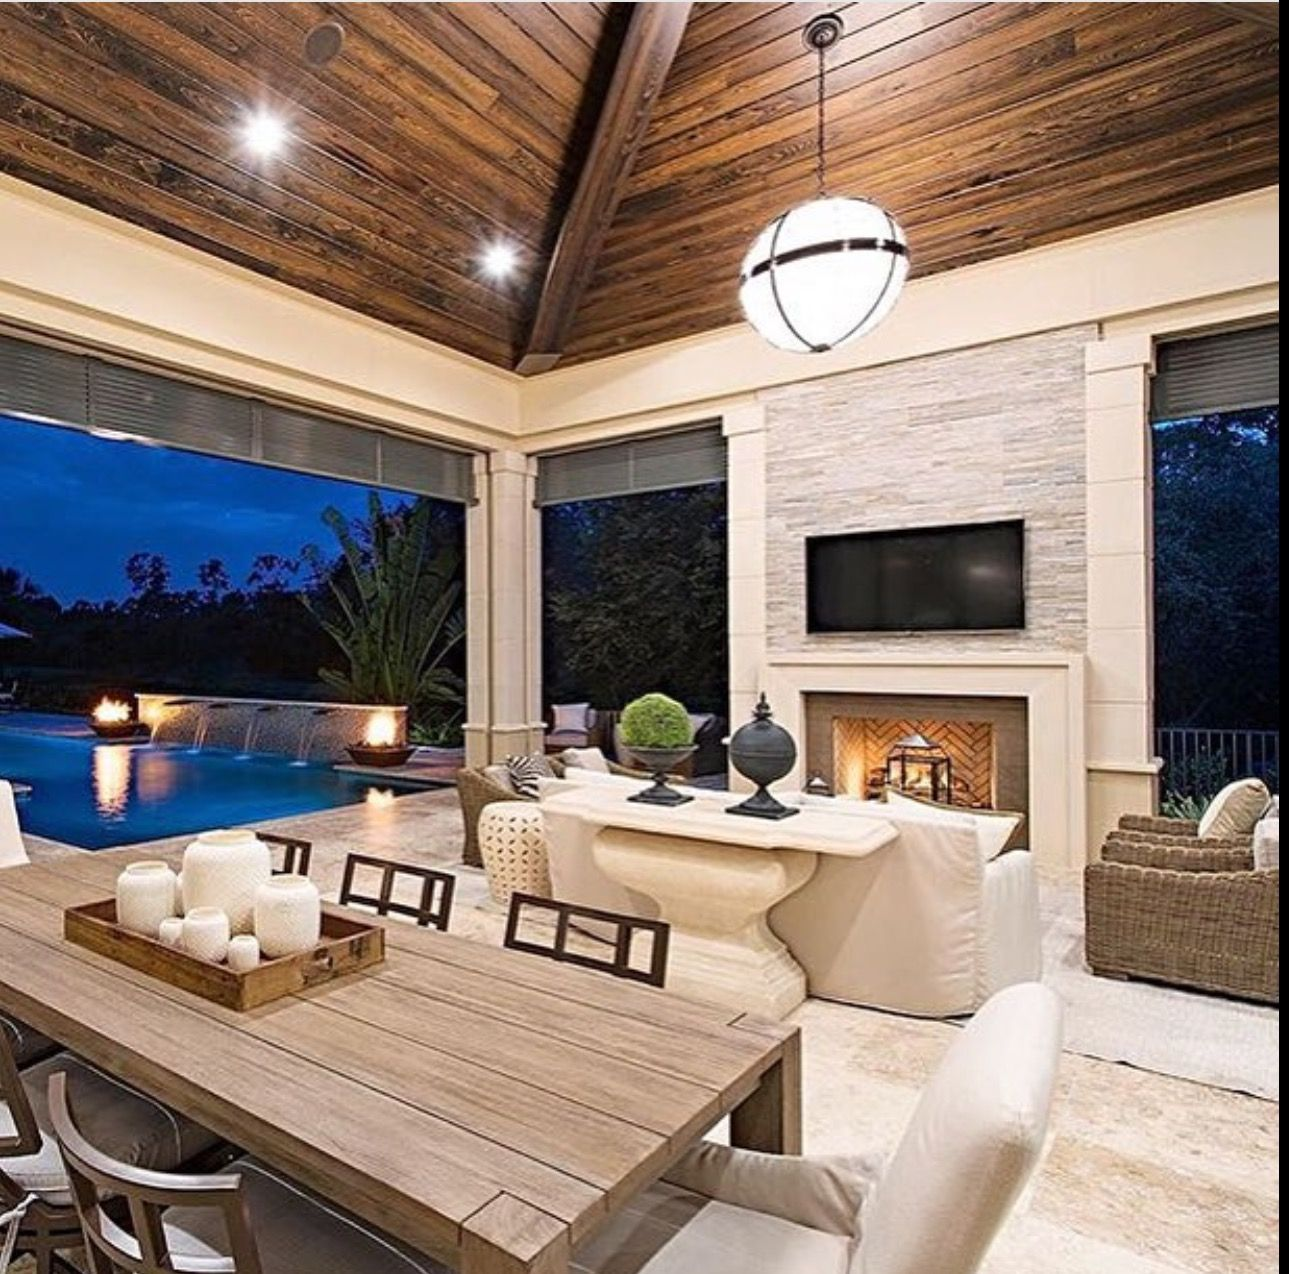 Seating Fireplace Wood Ceilings Color Palette Love It Outdoor Living Rooms Indoor Outdoor Fireplaces Outdoor Living Space #outdoor #living #room #with #fireplace